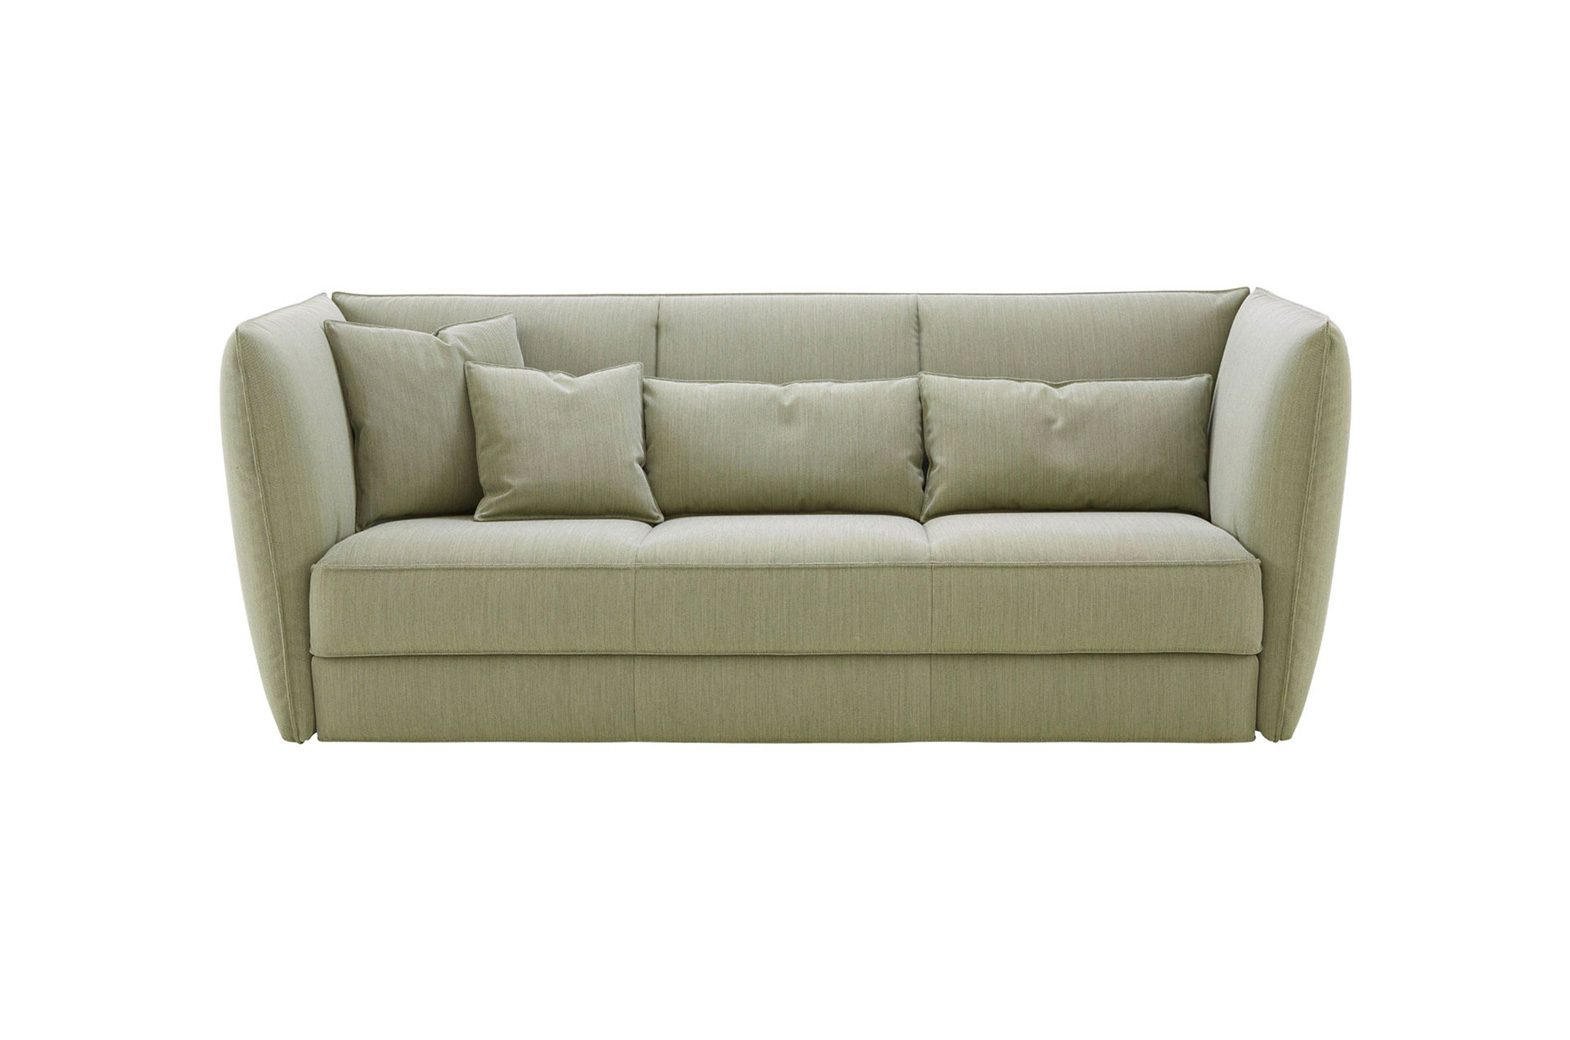 nick-rennie-softly-sofa-3-04aa